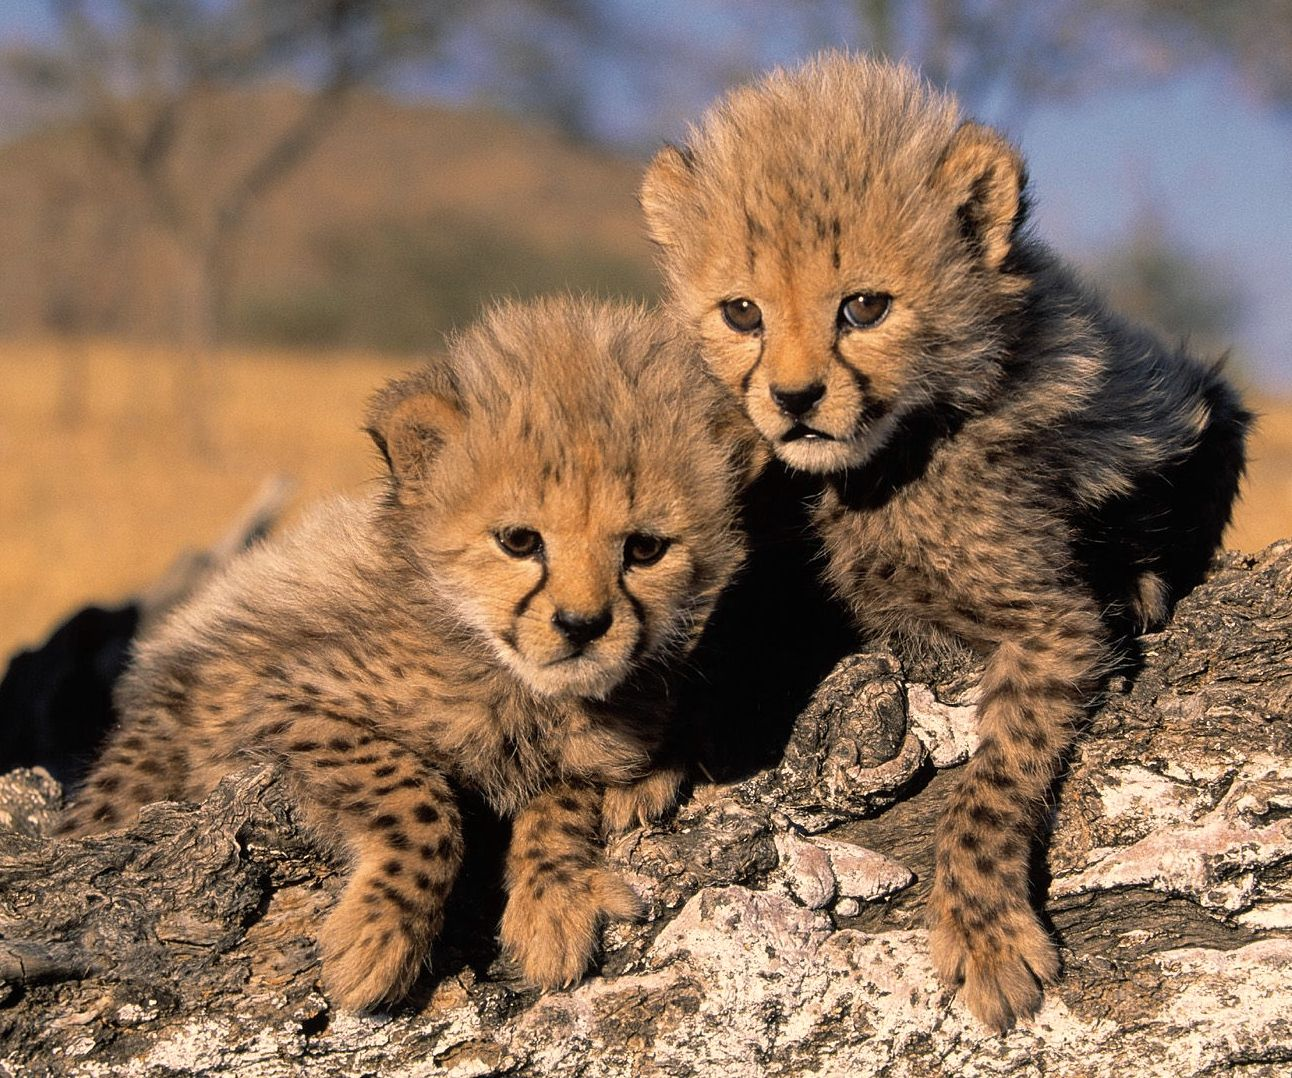 Animals Plants Rainforest: Baby cheetah facts and information